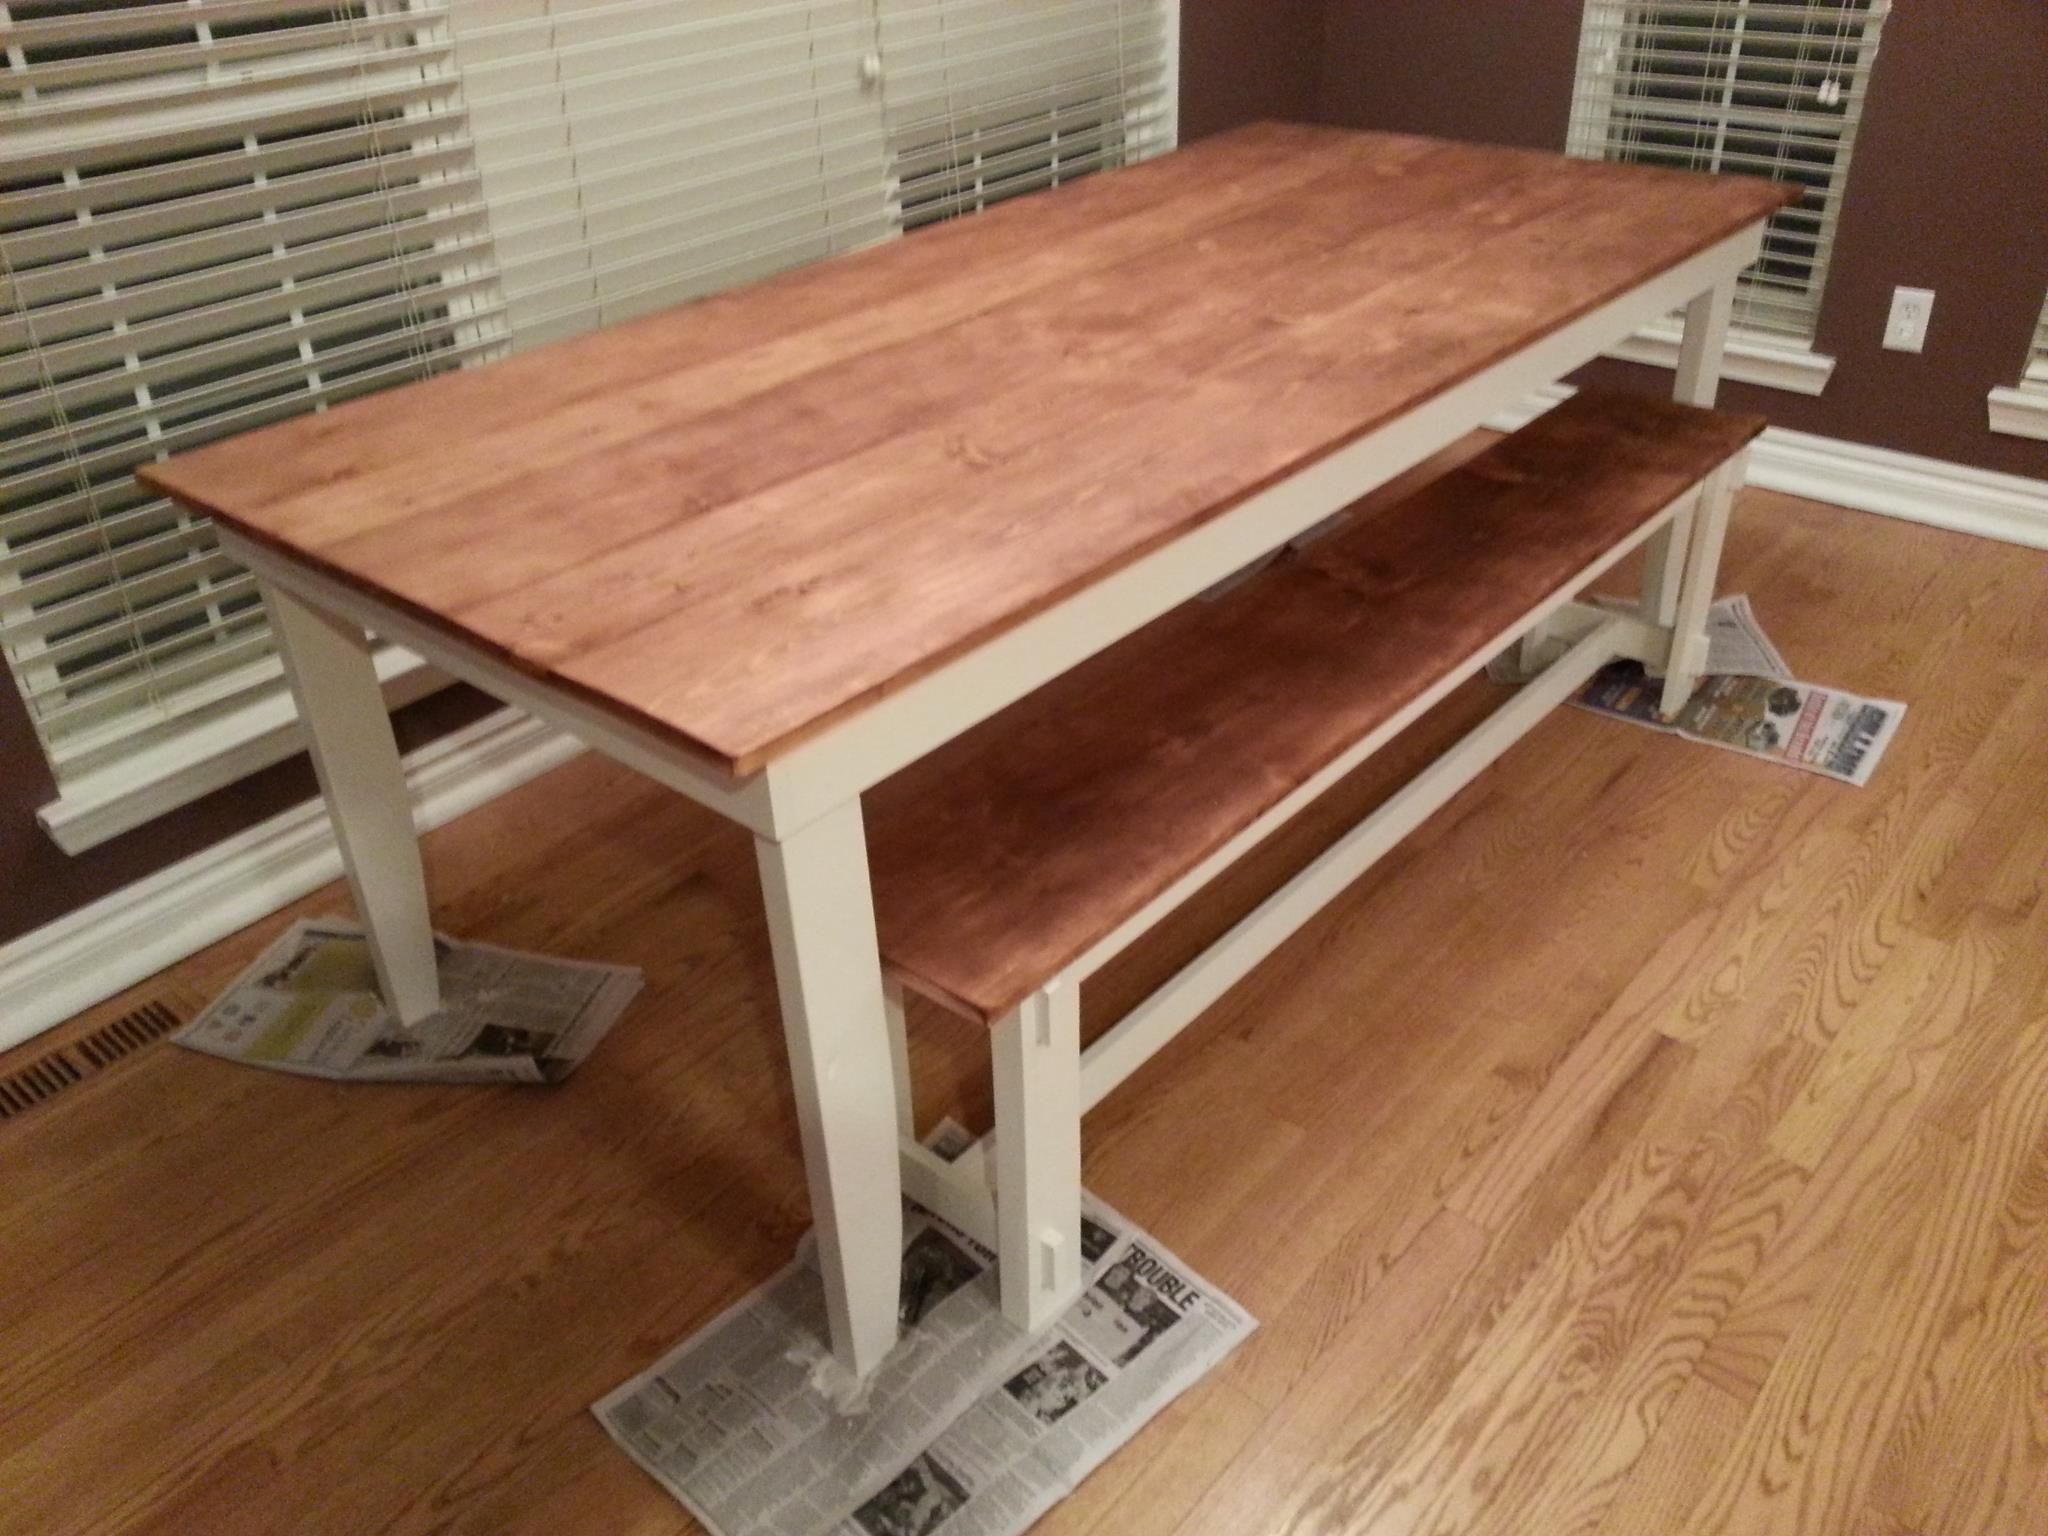 Rustic Table and Bench - minwax honey stain | wood finishes ...